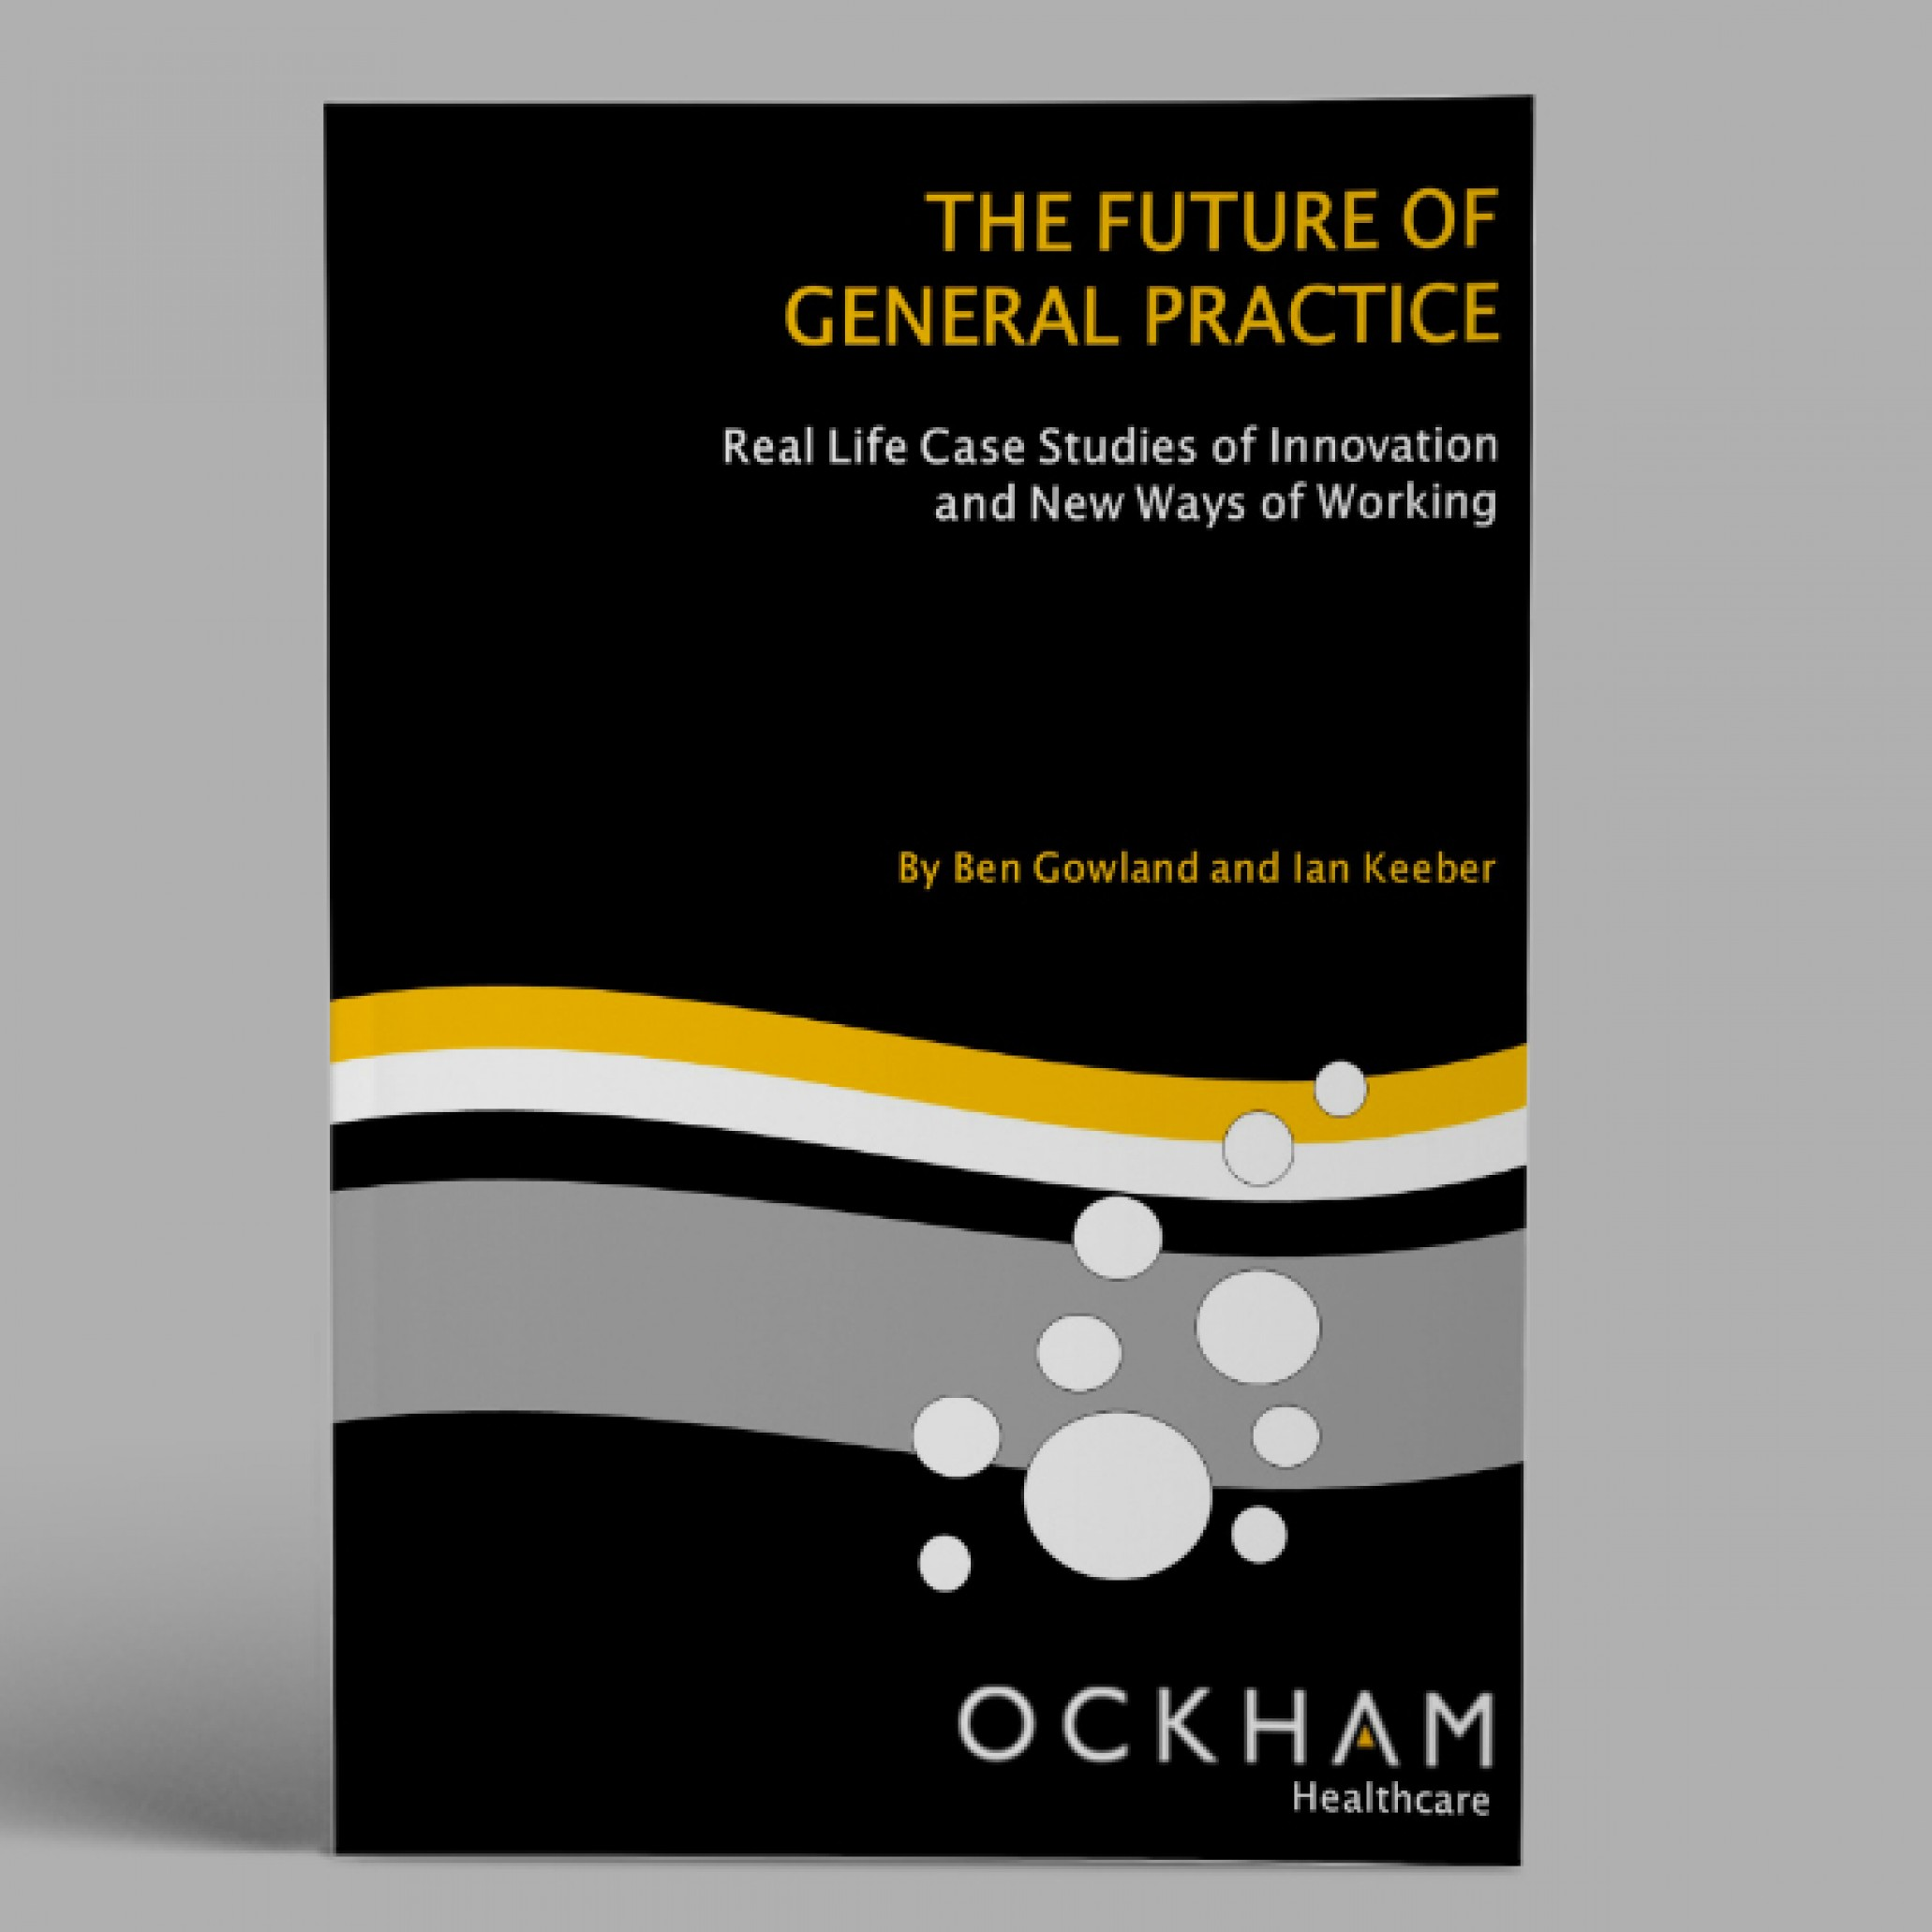 The General Practice Blog Archives - Page 3 of 33 - Ockham